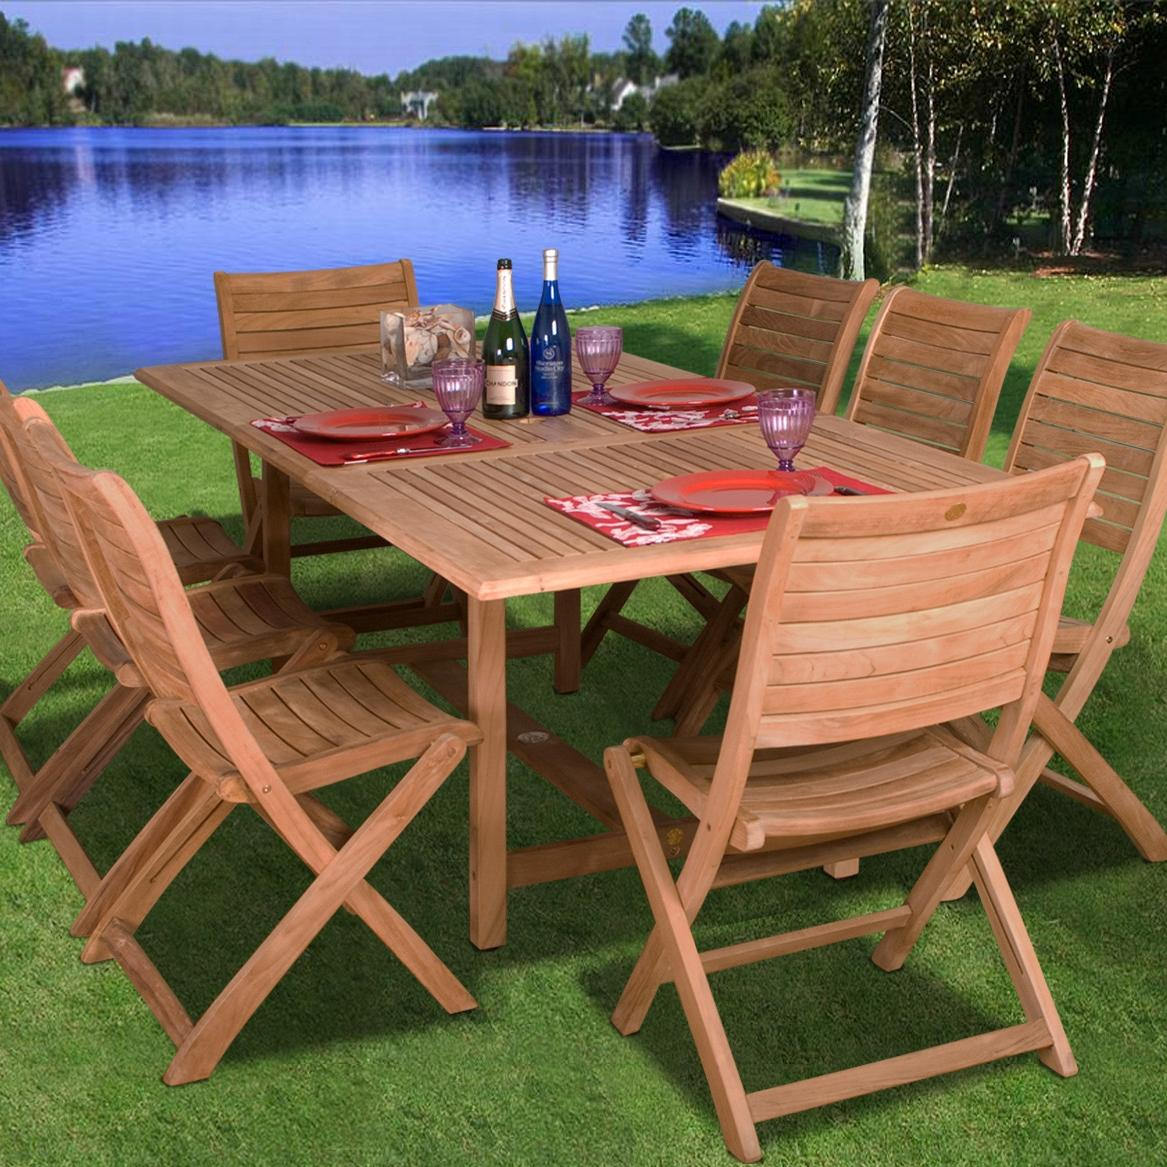 Amazonia Teak Dublin 8-person Teak Patio Dining Set With Extension Table And Folding Chairs